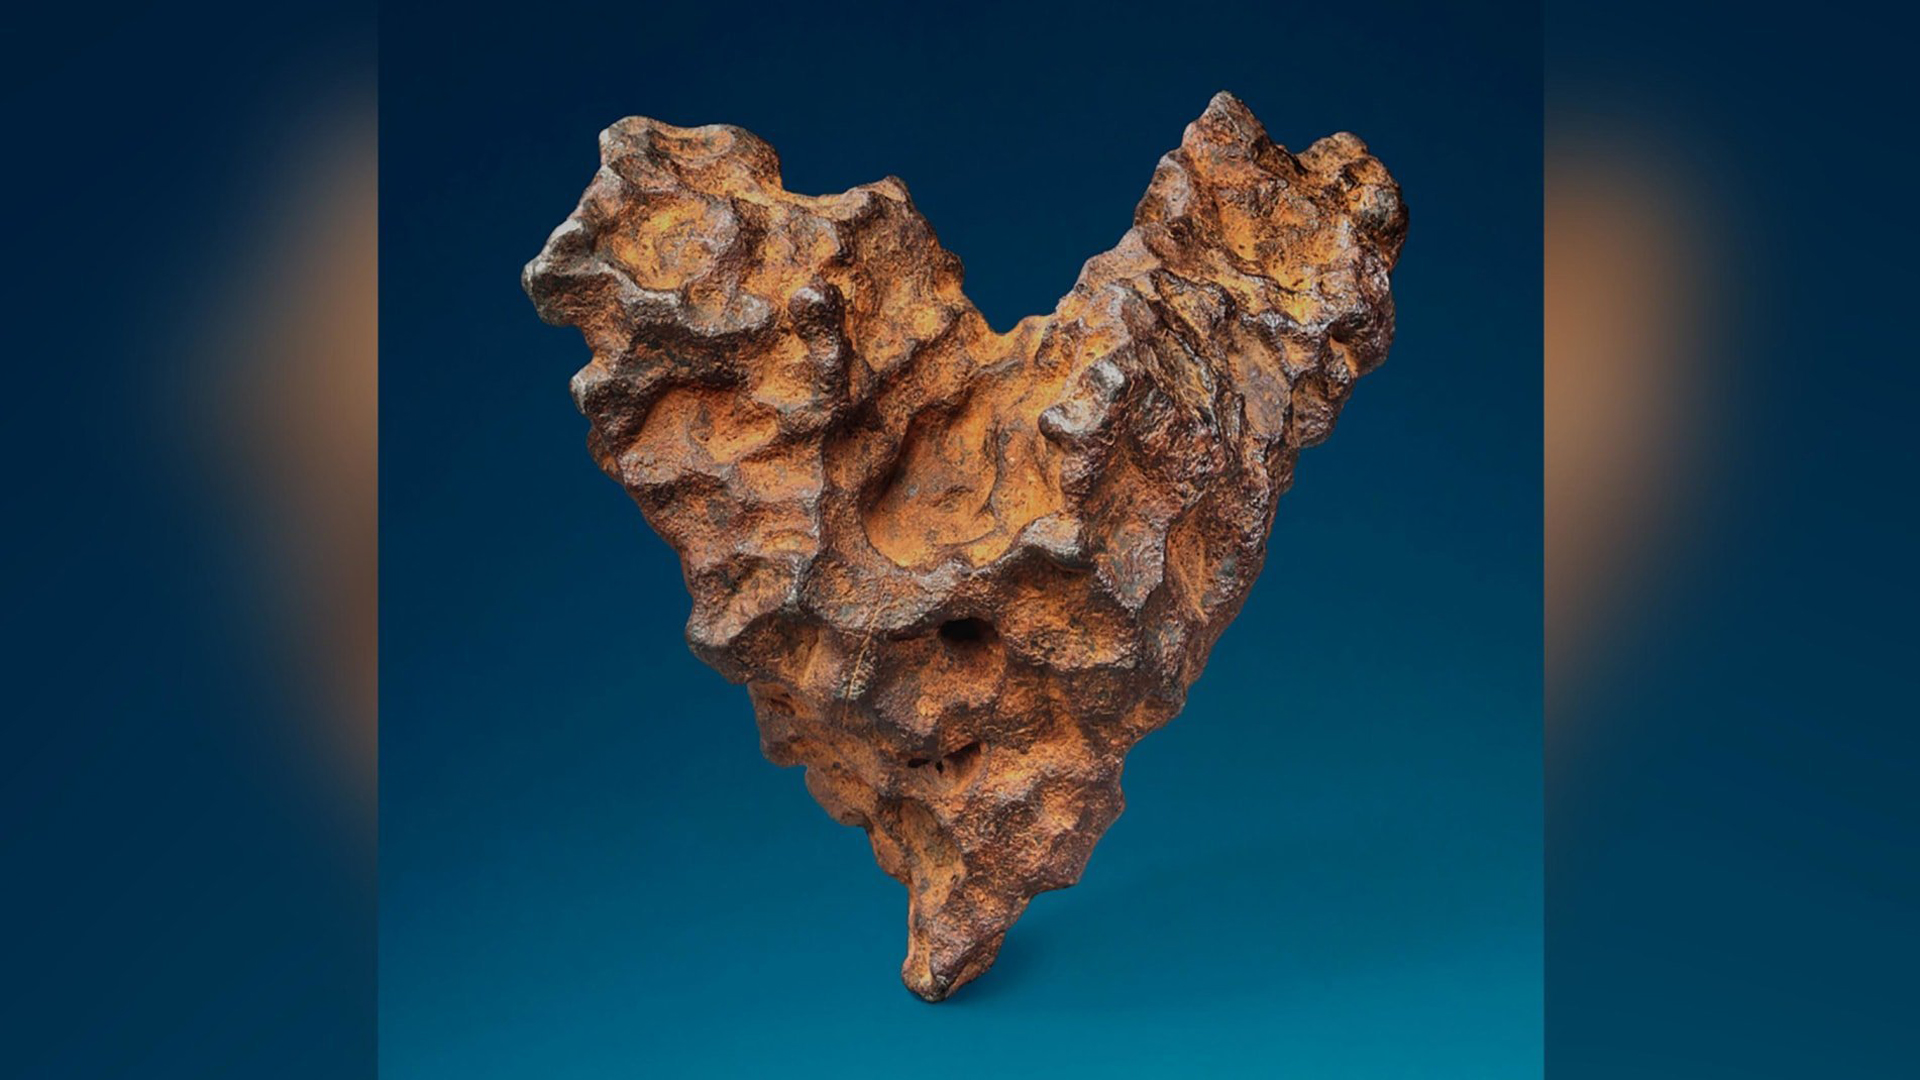 Christie's will open online bidding on a heart-shaped meteorite on Feb. 6, 2019. The auction closes on Valentine's Day. (Credit: Christie's)